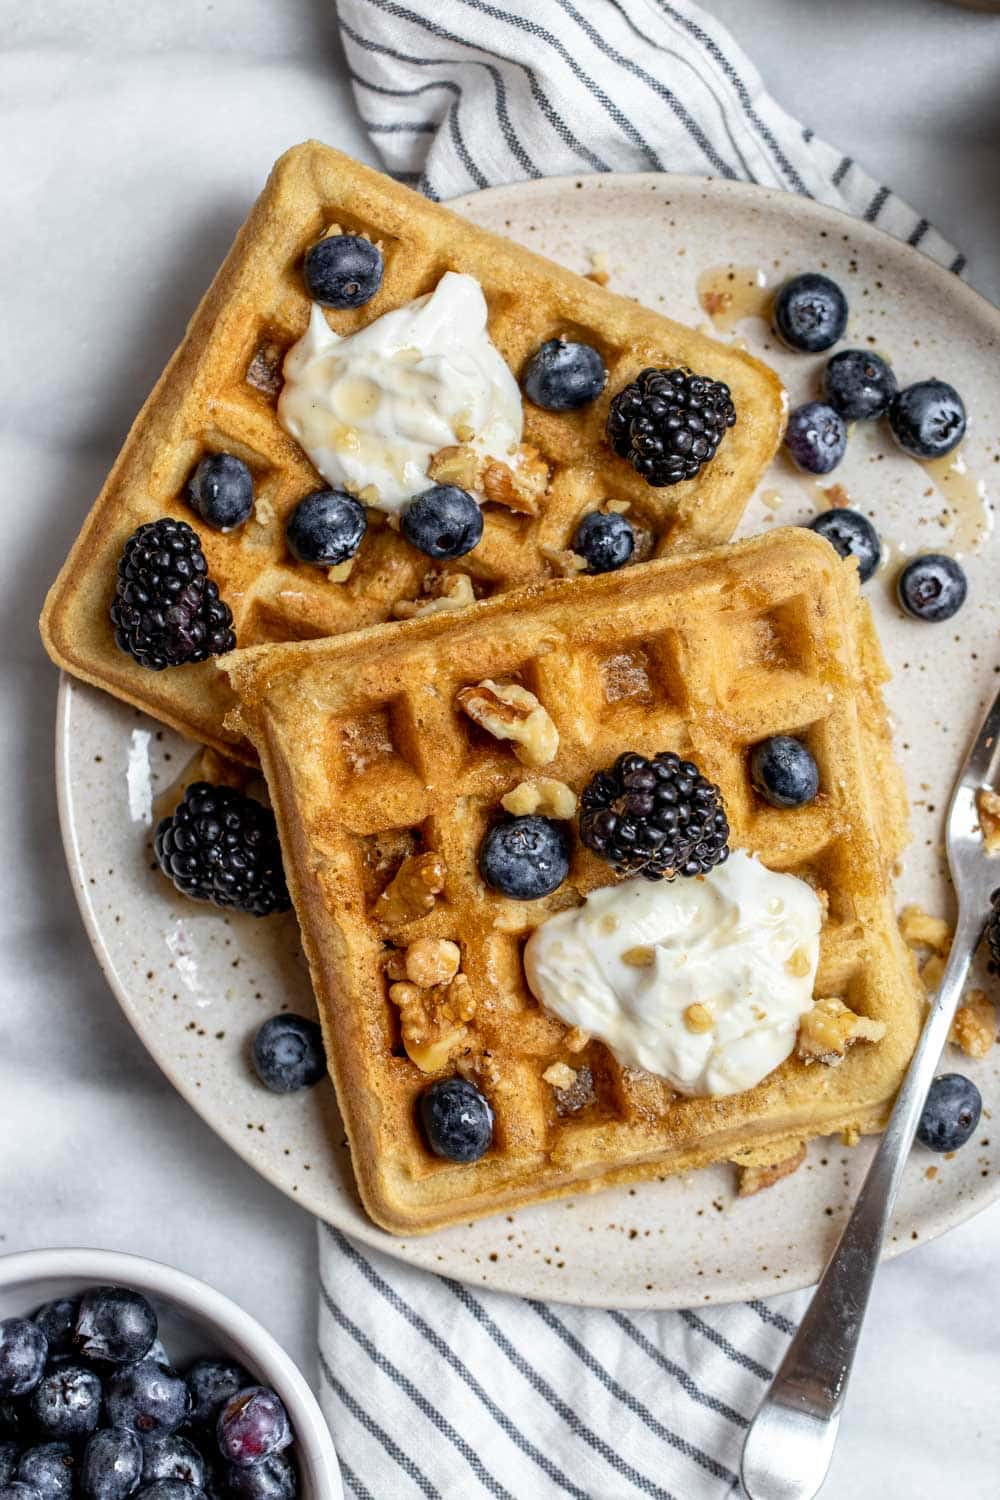 Two waffles on a plate with blueberries and maple syrup.